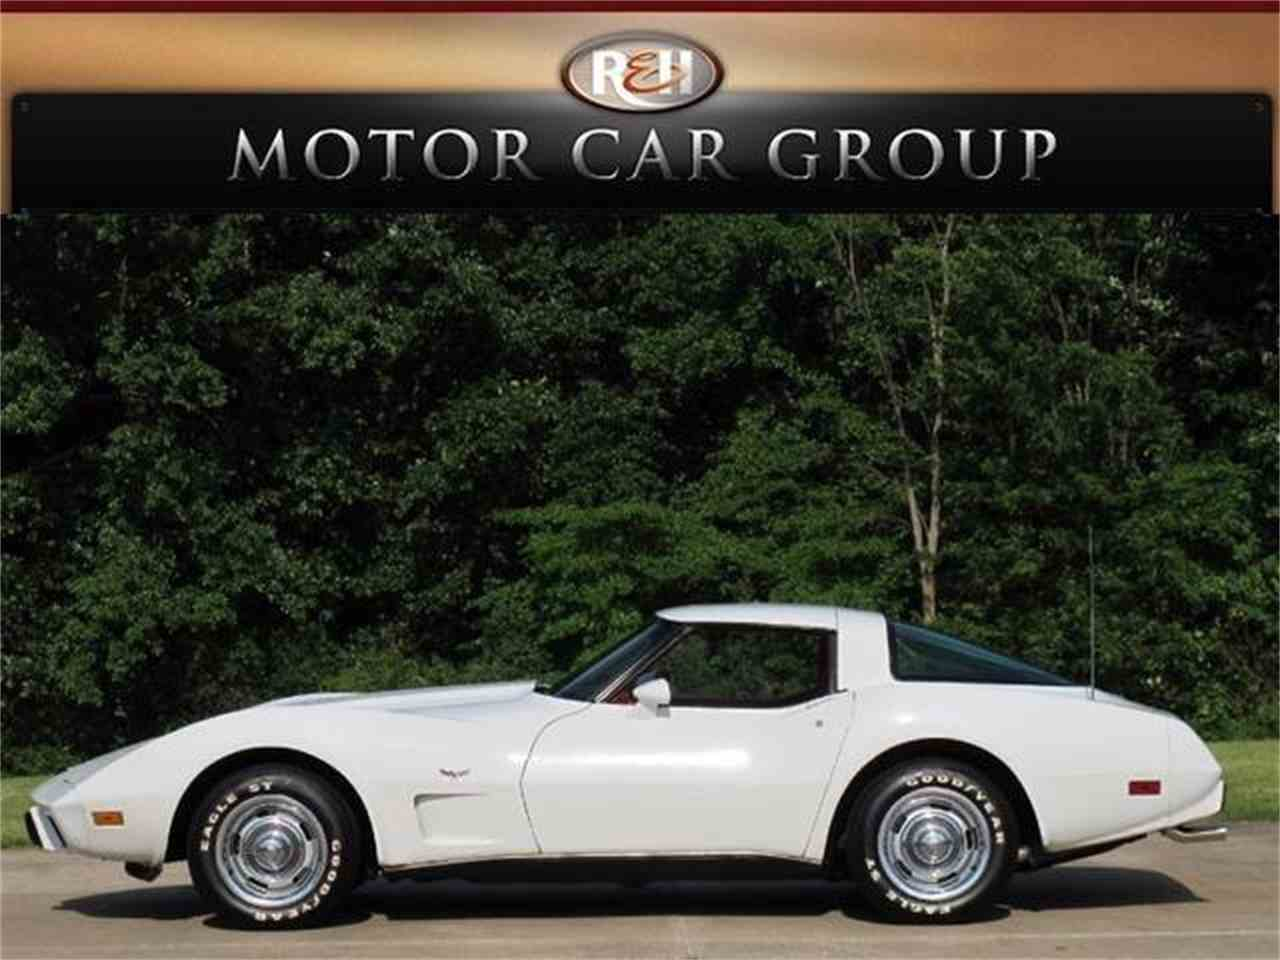 Large Picture of '79 Corvette - $29,990.00 Offered by R&H Motor Car Group - ETAN